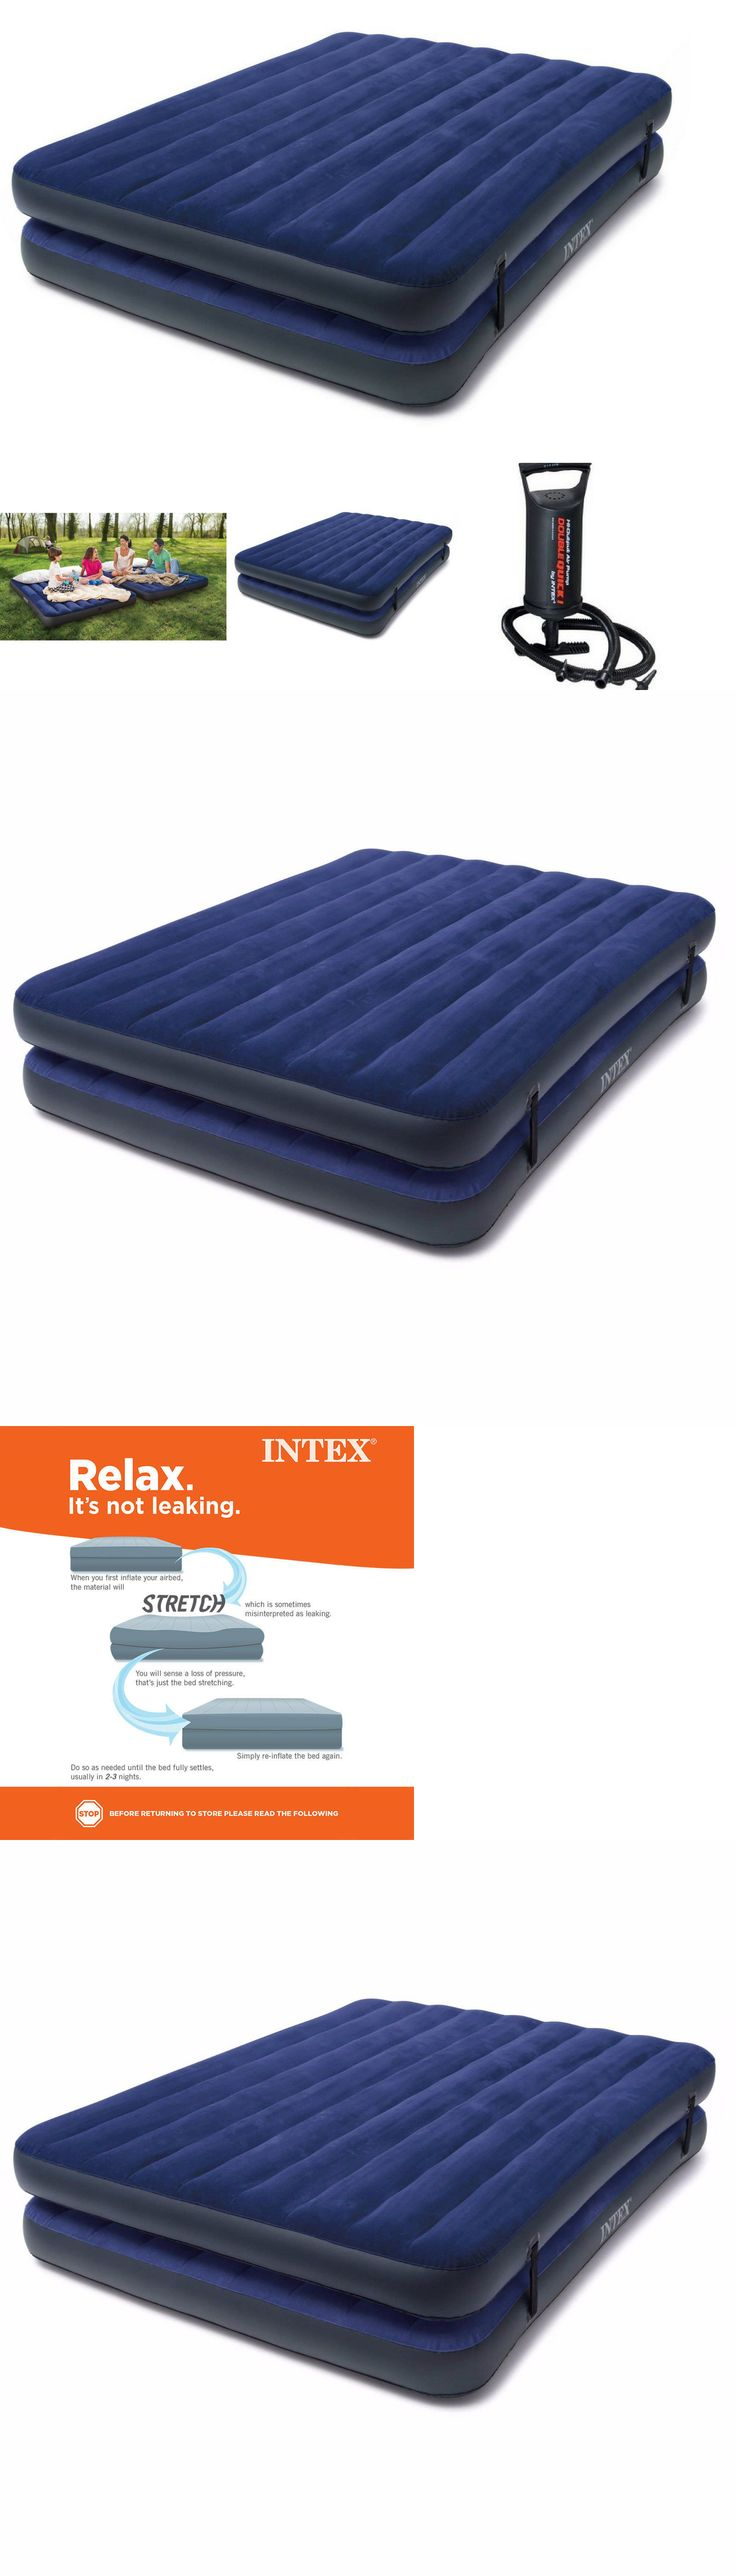 Other Camping Sleeping Gear 16040: Double Airbed Air Mattress Queen Size Intex Inflatable Raised Camping Bed W Pump -> BUY IT NOW ONLY: $37.3 on eBay!